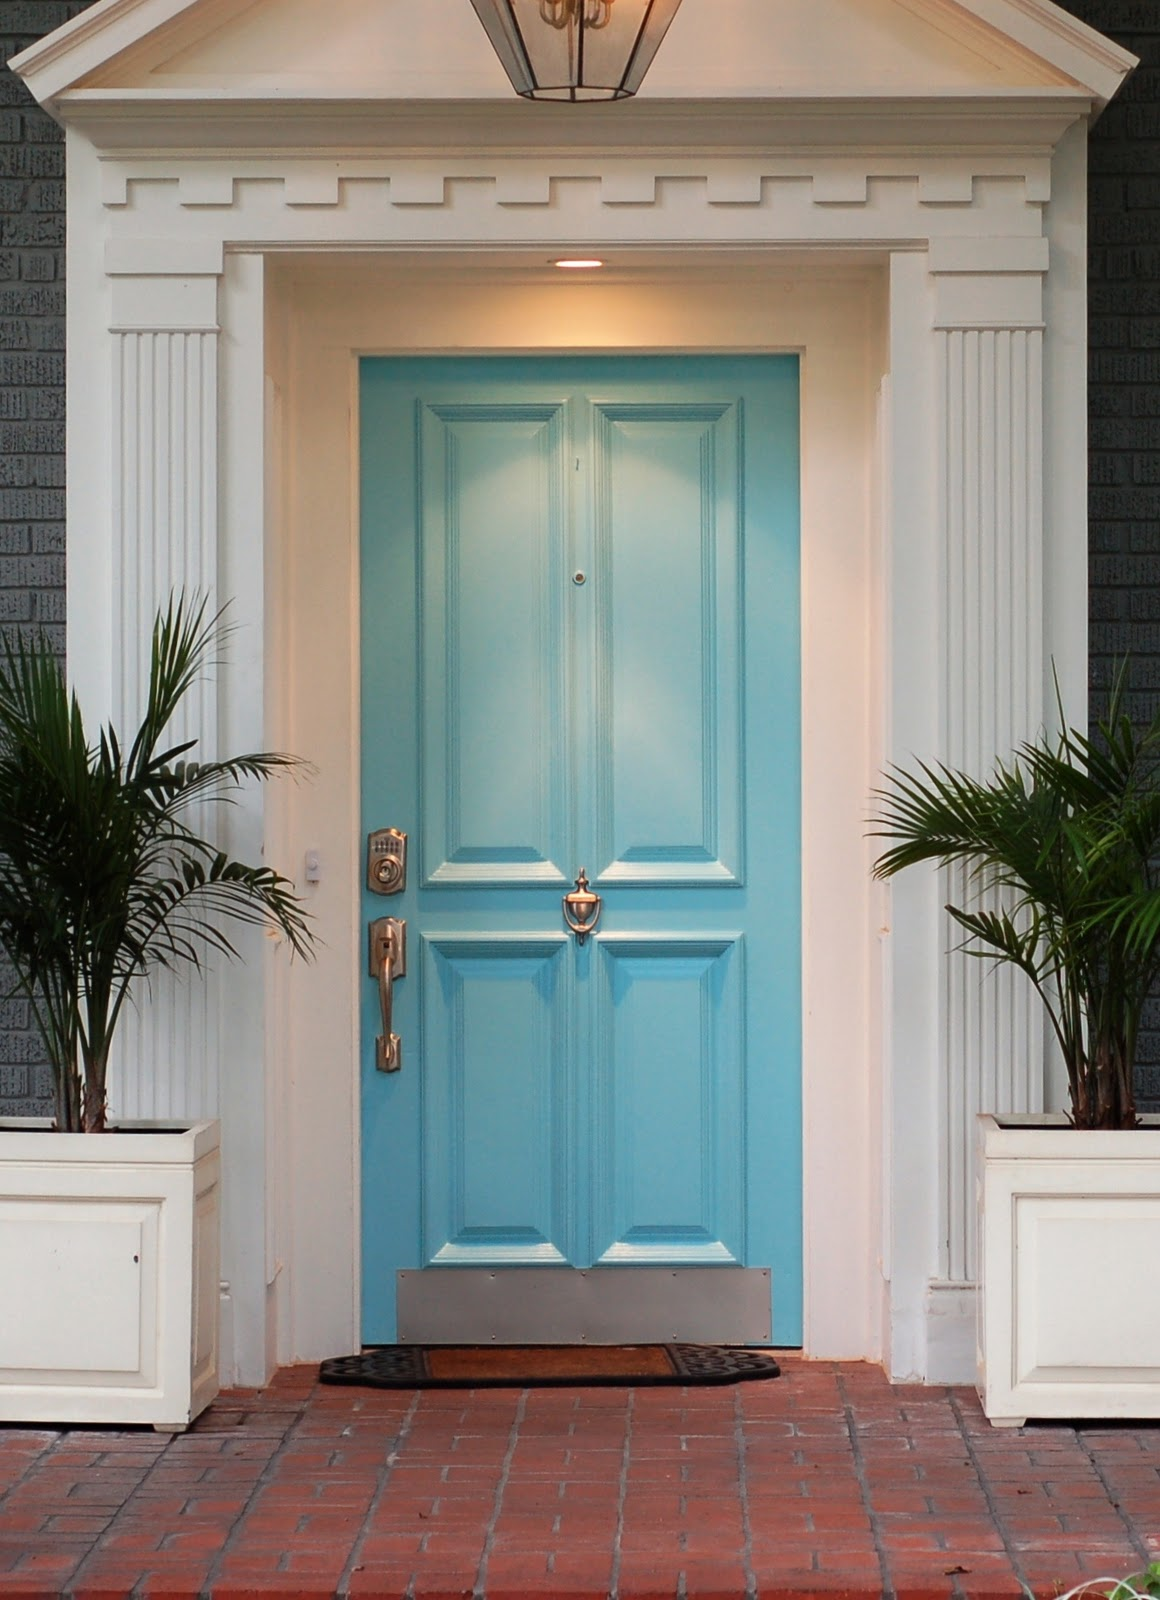 North dallas real estate front door colors to help sell Best color for front door to sell house